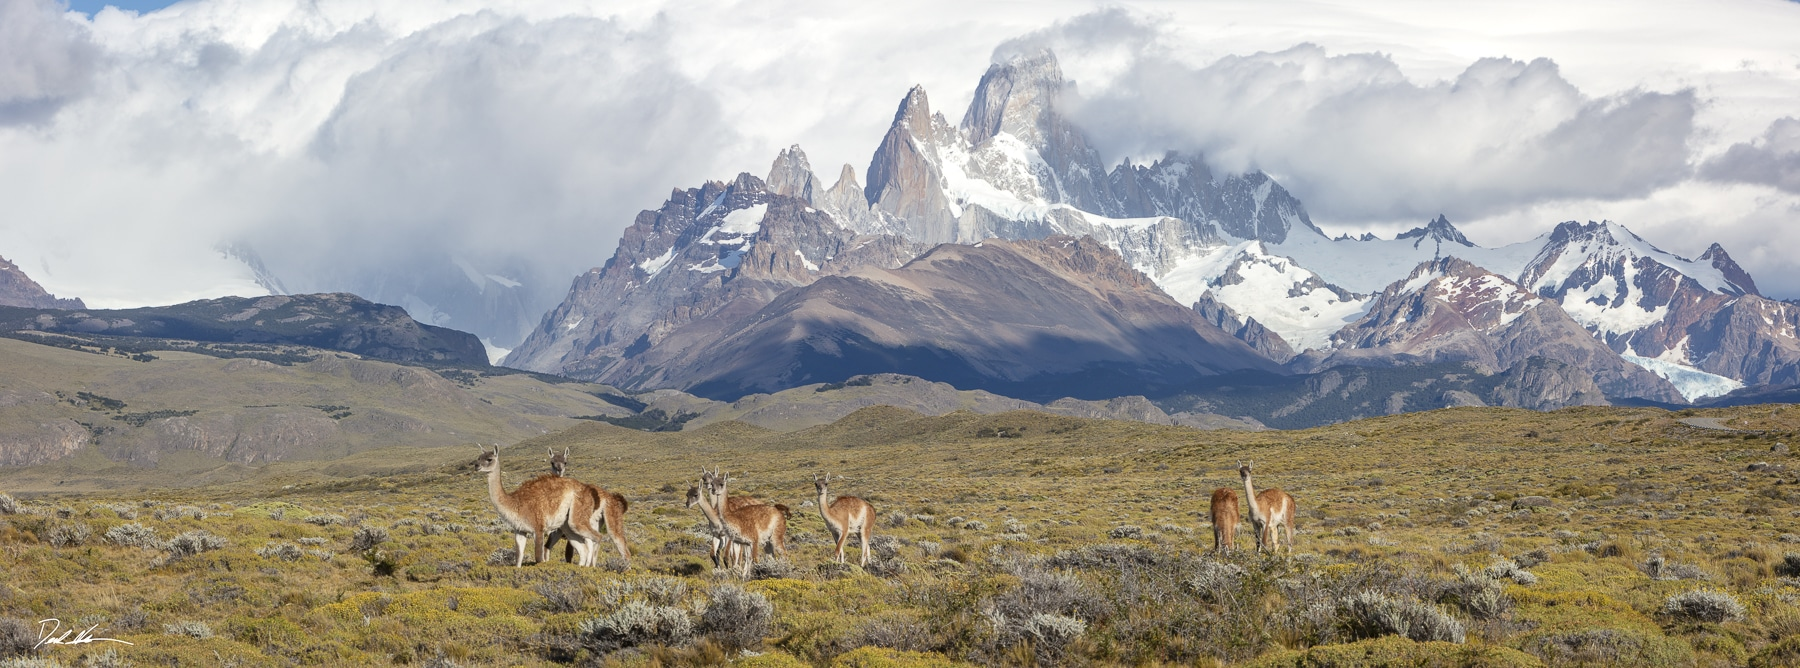 wildlife crossing in front of Mount Fitz Roy Patagonia